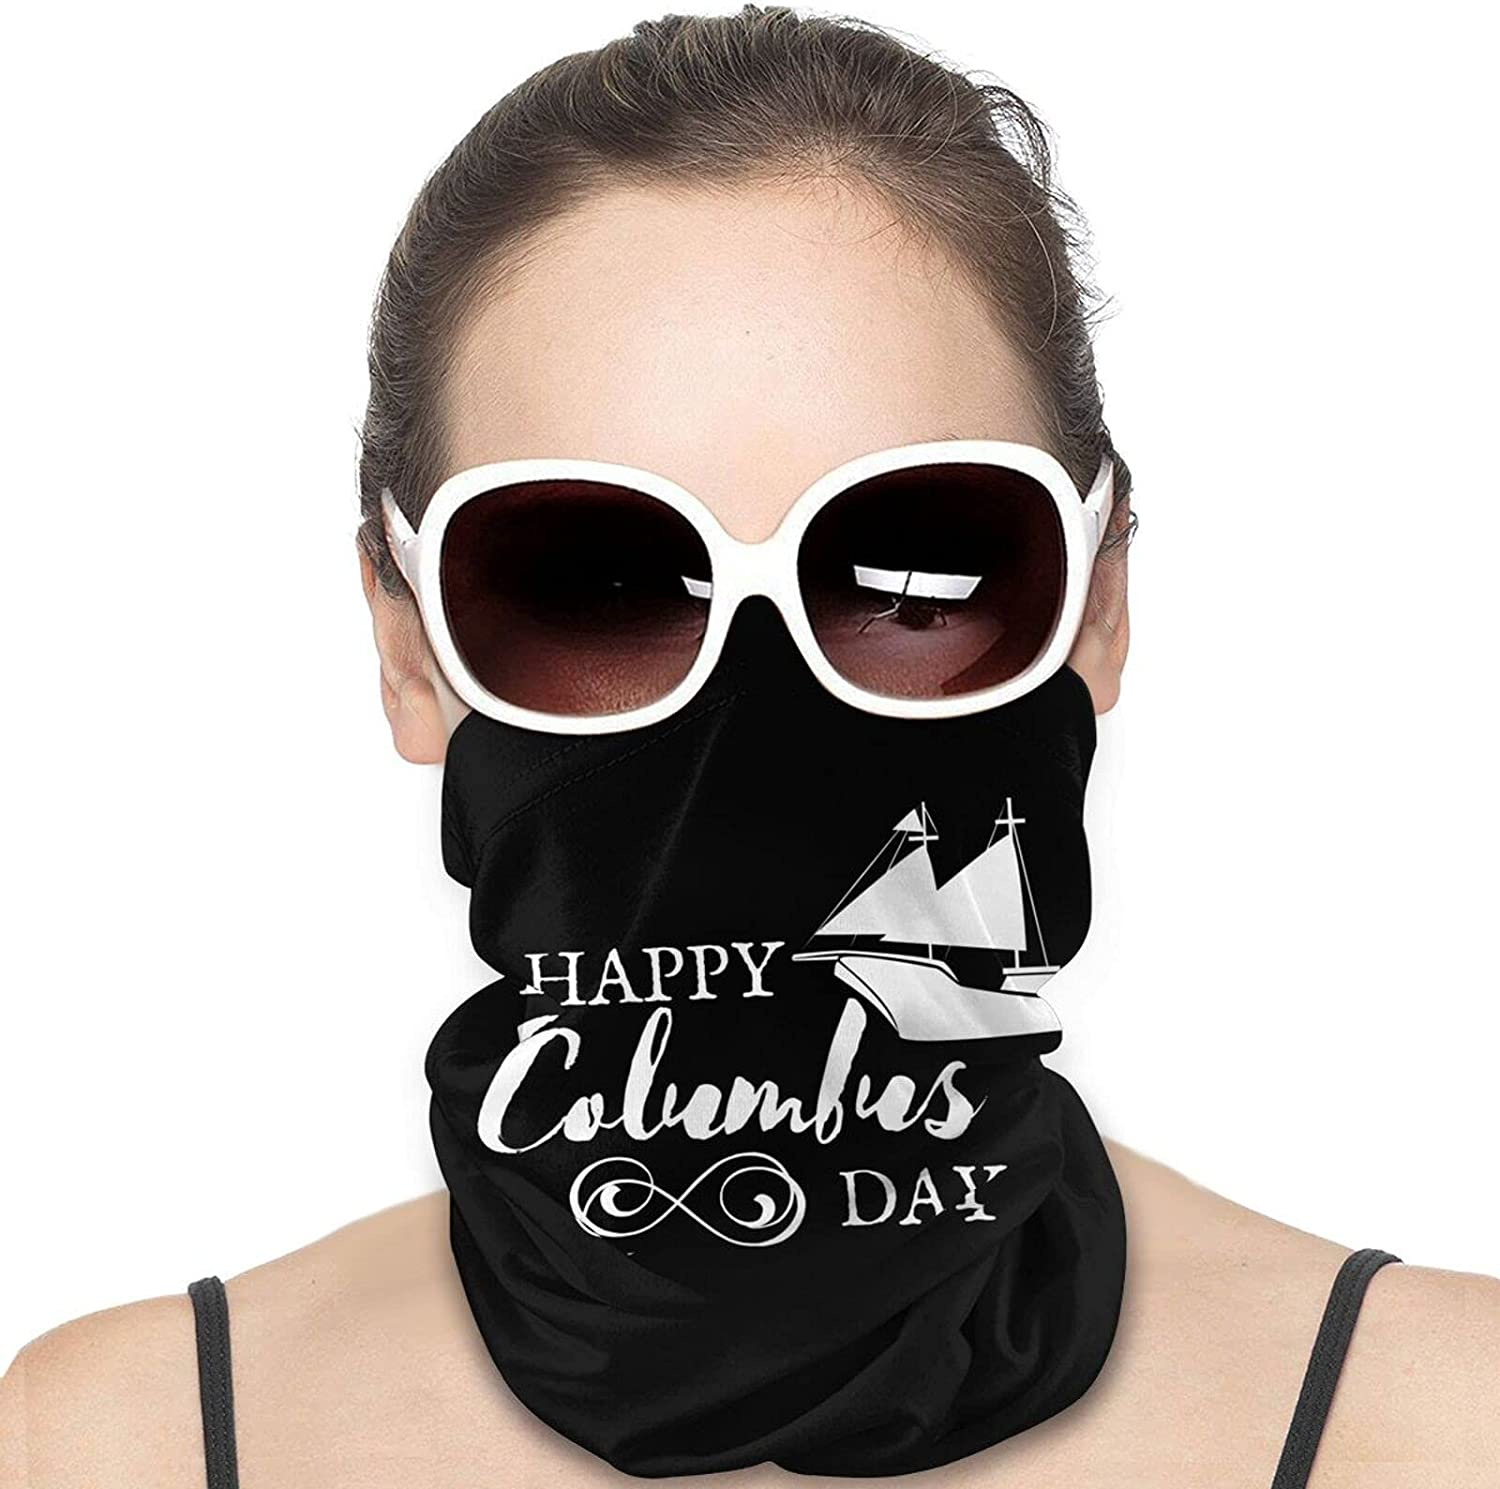 Regatta 2021 Columbus Day Round Neck Gaiter Bandnas Face Cover Uv Protection Prevent bask in Ice Scarf Headbands Perfect for Motorcycle Cycling Running Festival Raves Outdoors